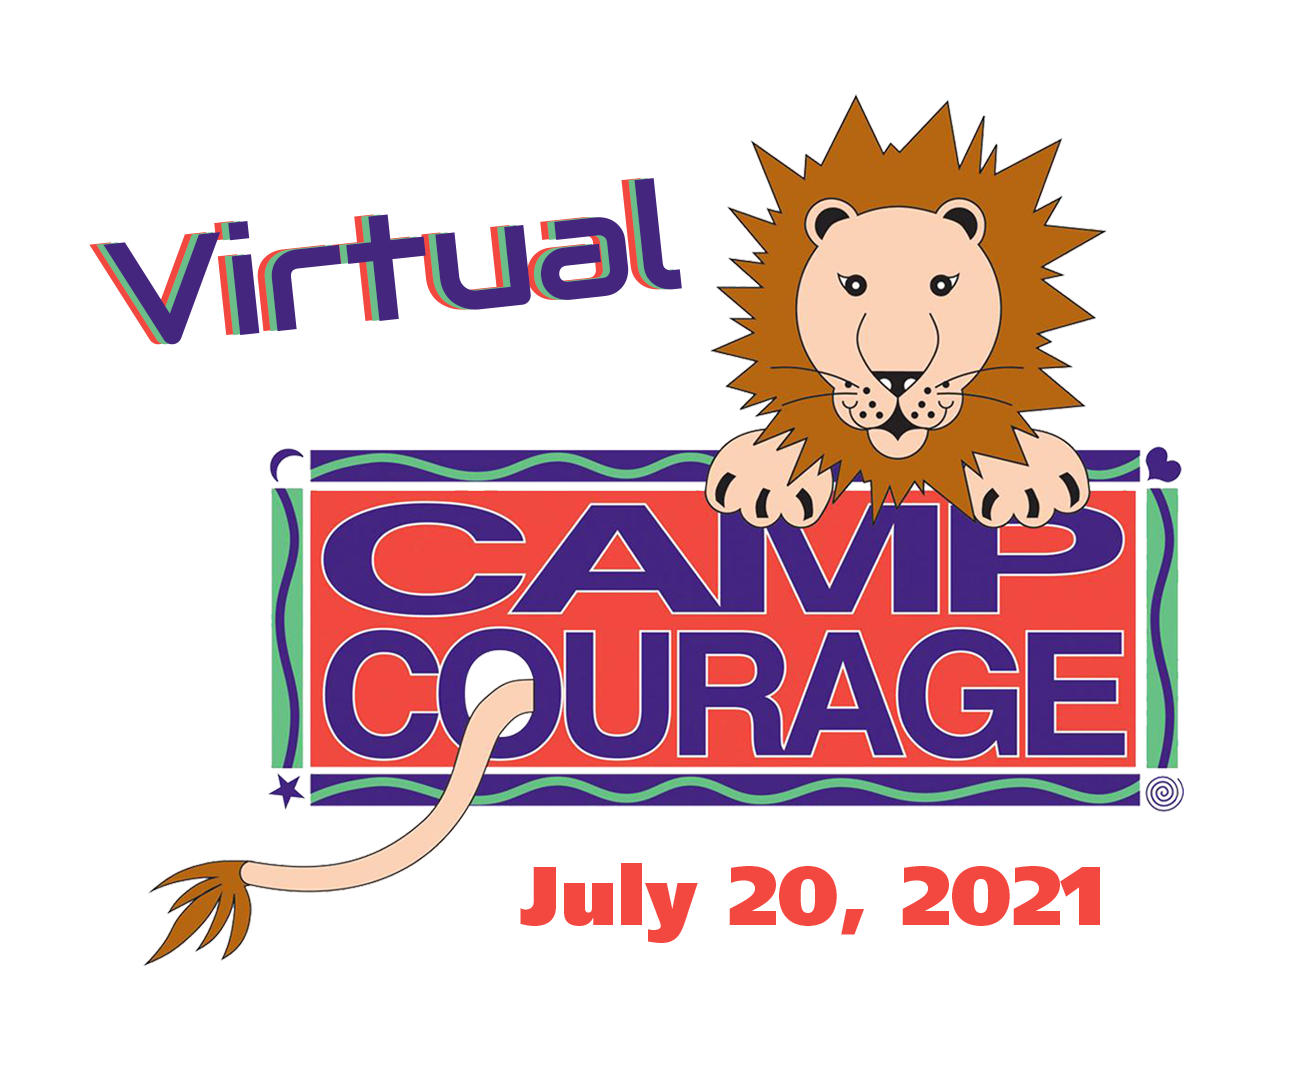 Virtual Camp Courage Logo with Date - Virtual Camp Courage- 28th Annual Children's Grief Camp